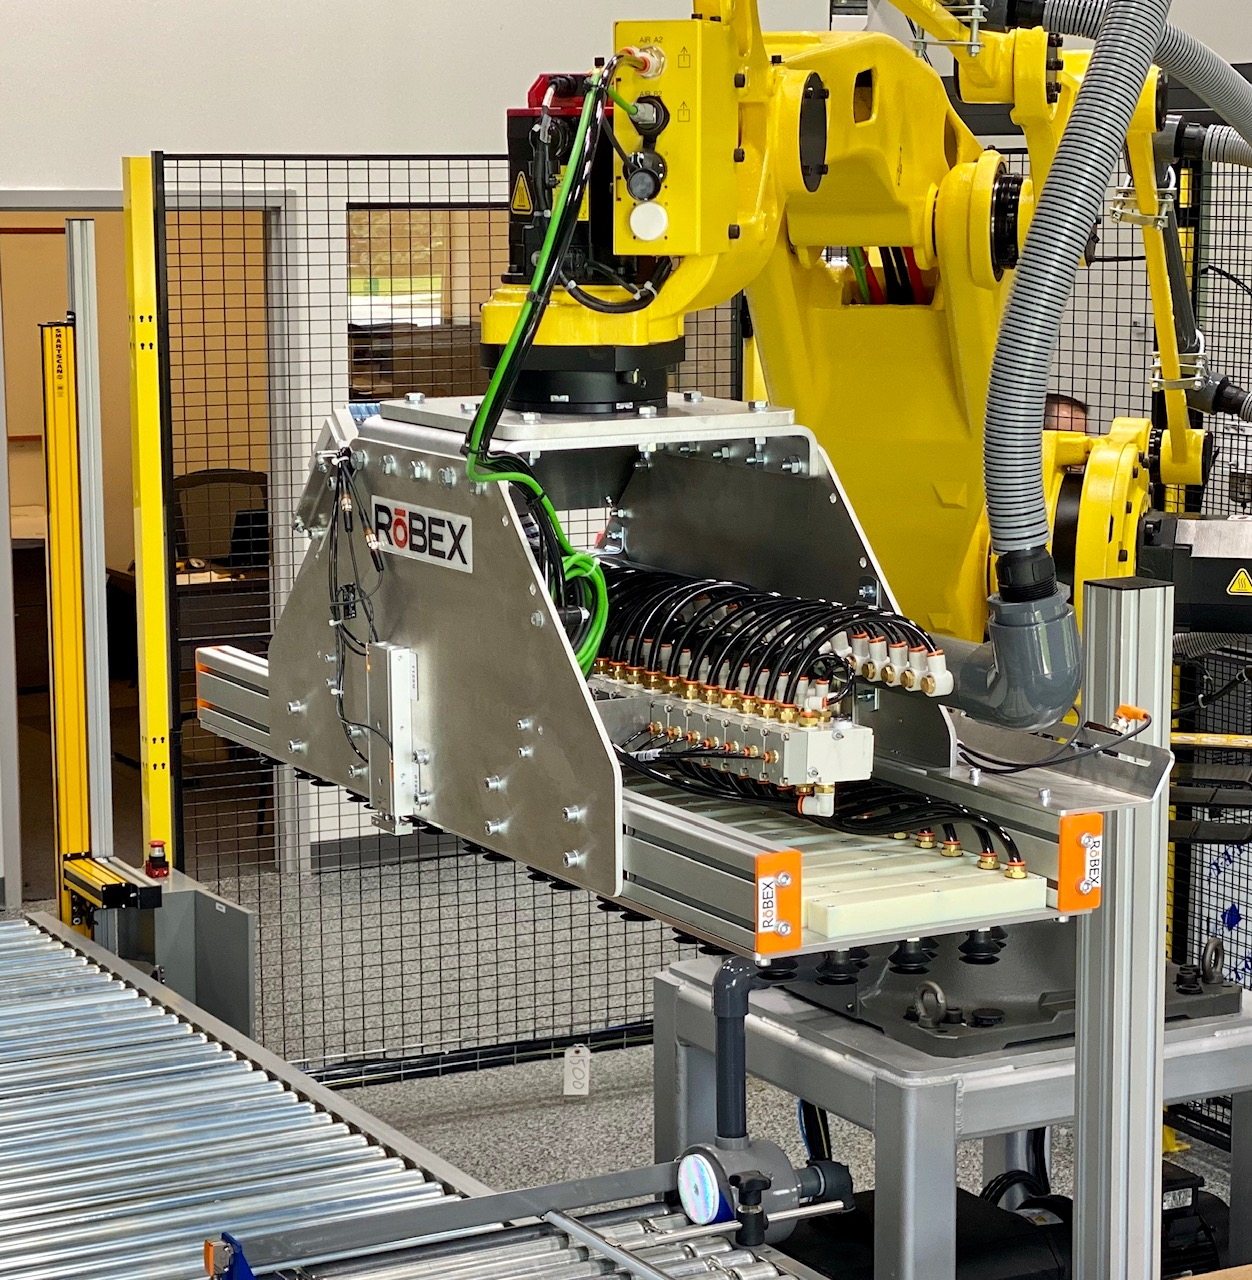 The Robex Staxx palletizer is offered on the Flexx Machine-as-a-Service program.